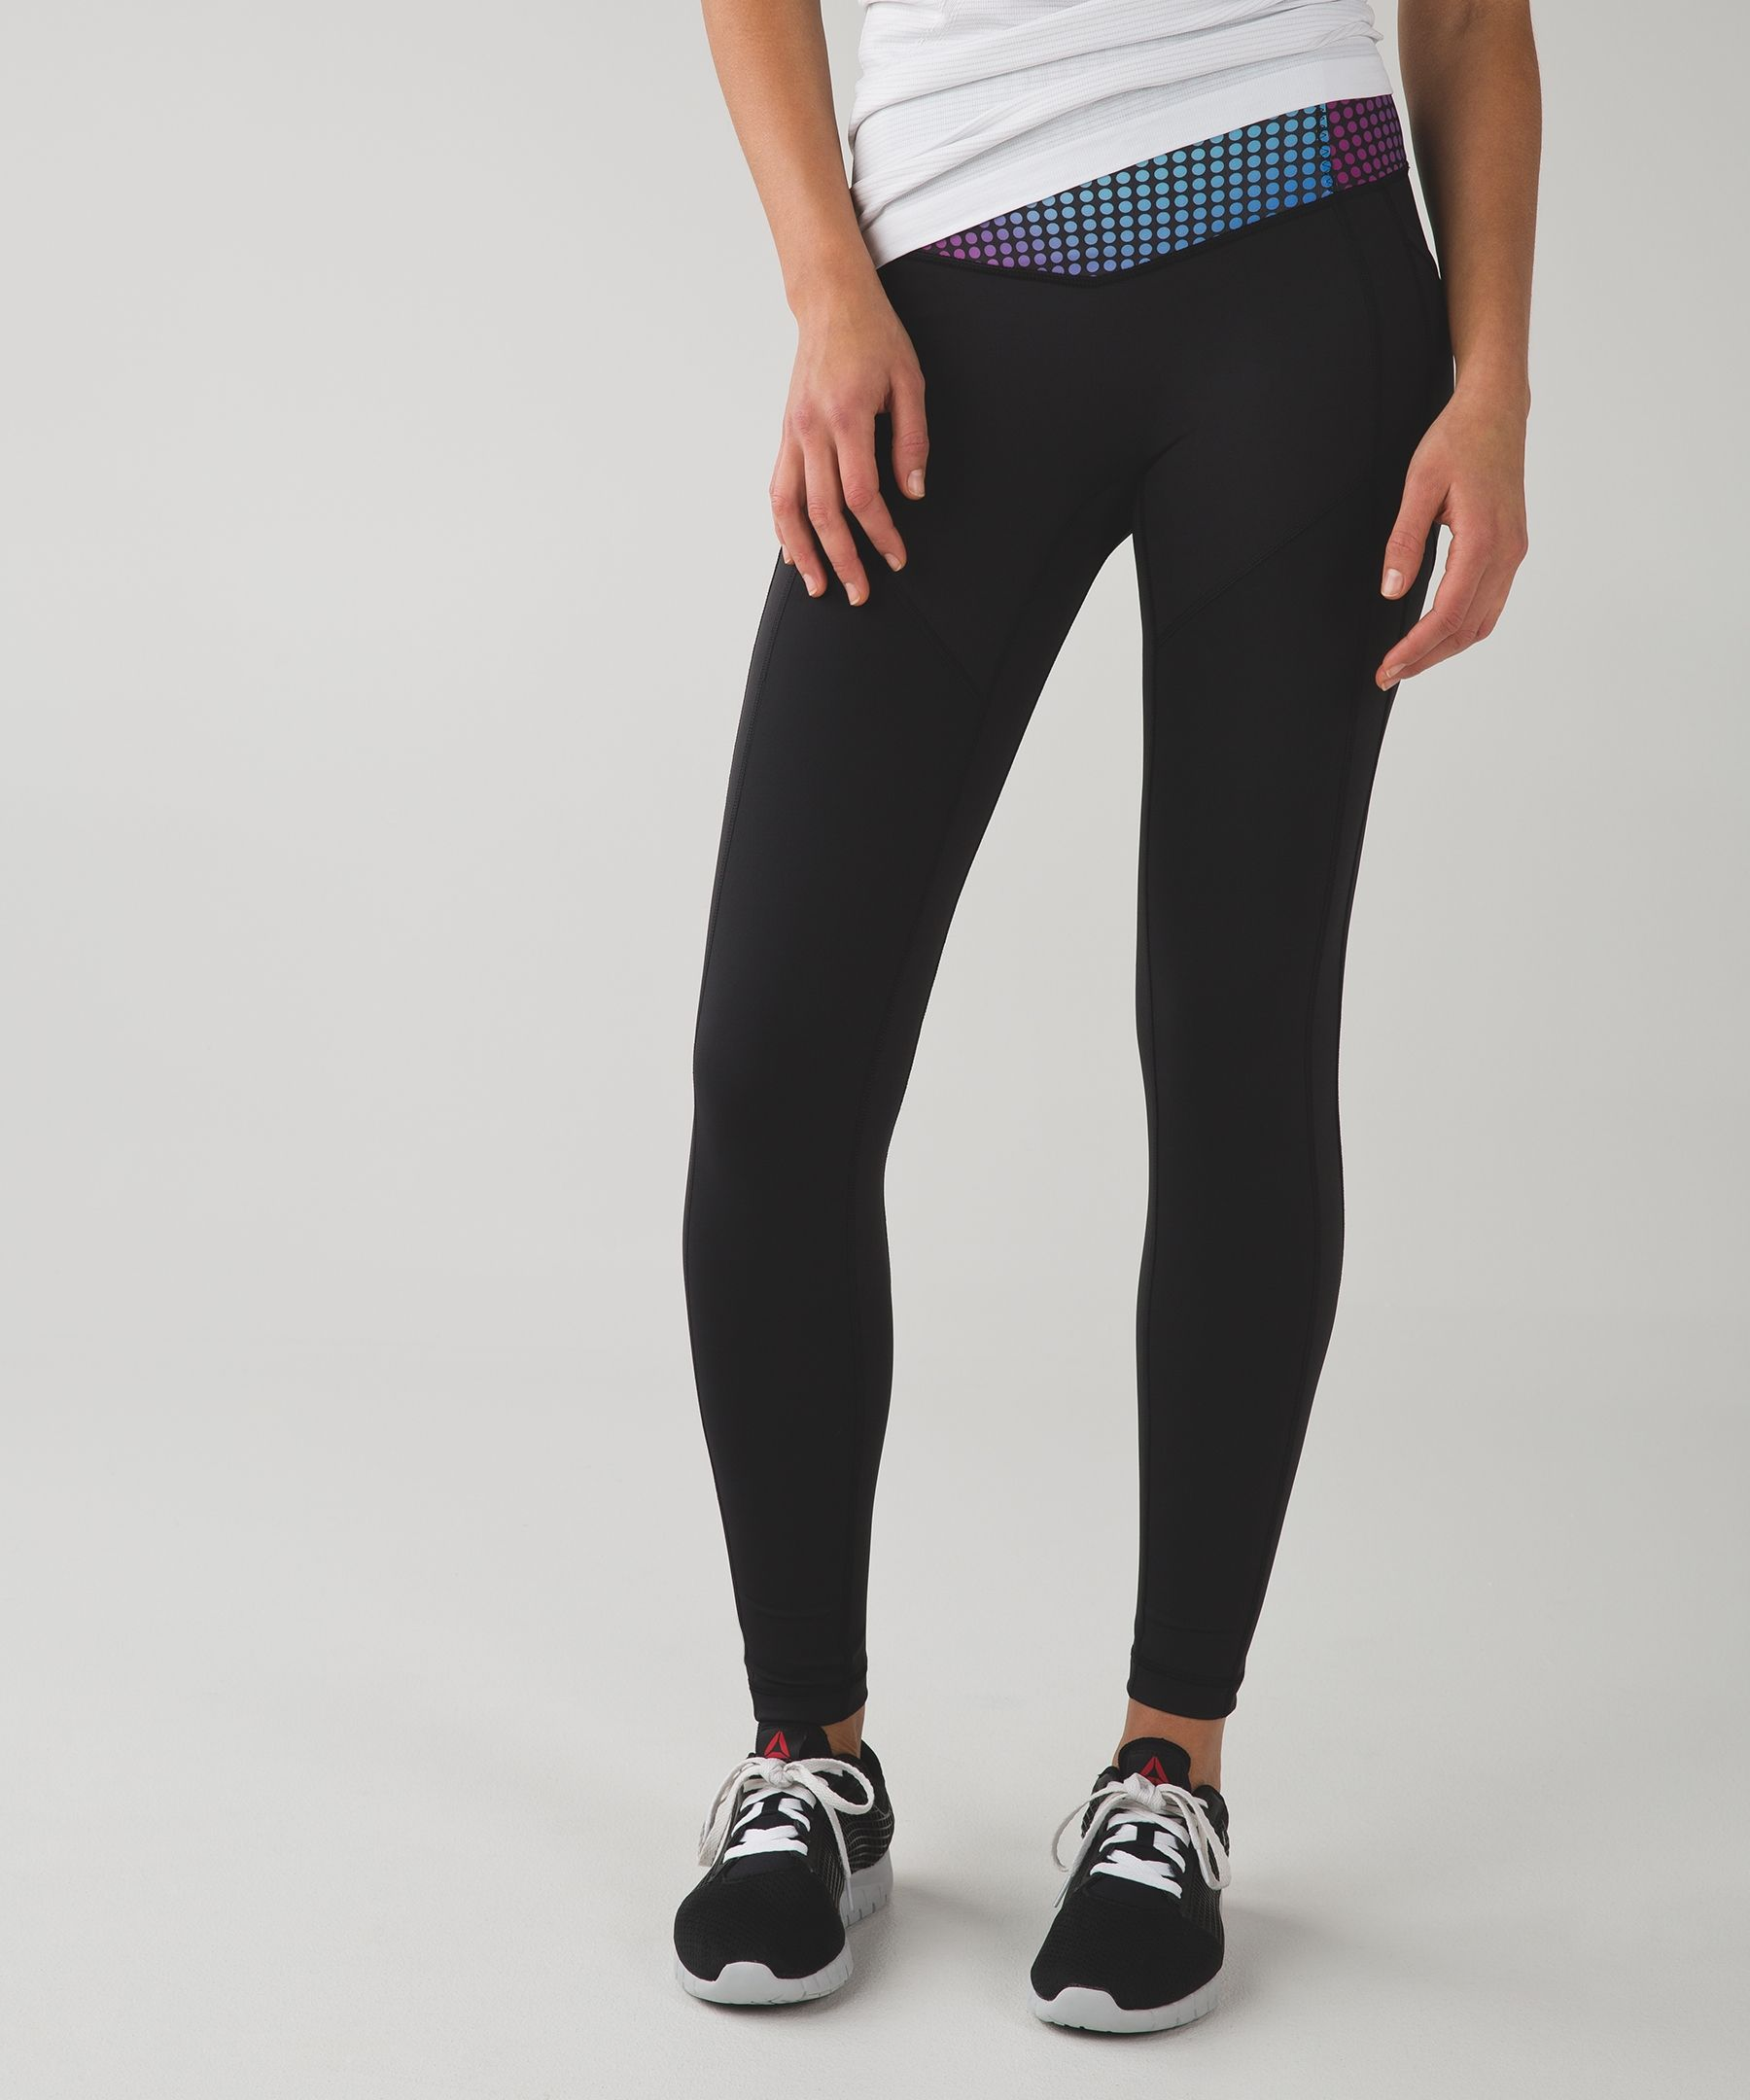 Workout Clothes for Women   #fitness #express #